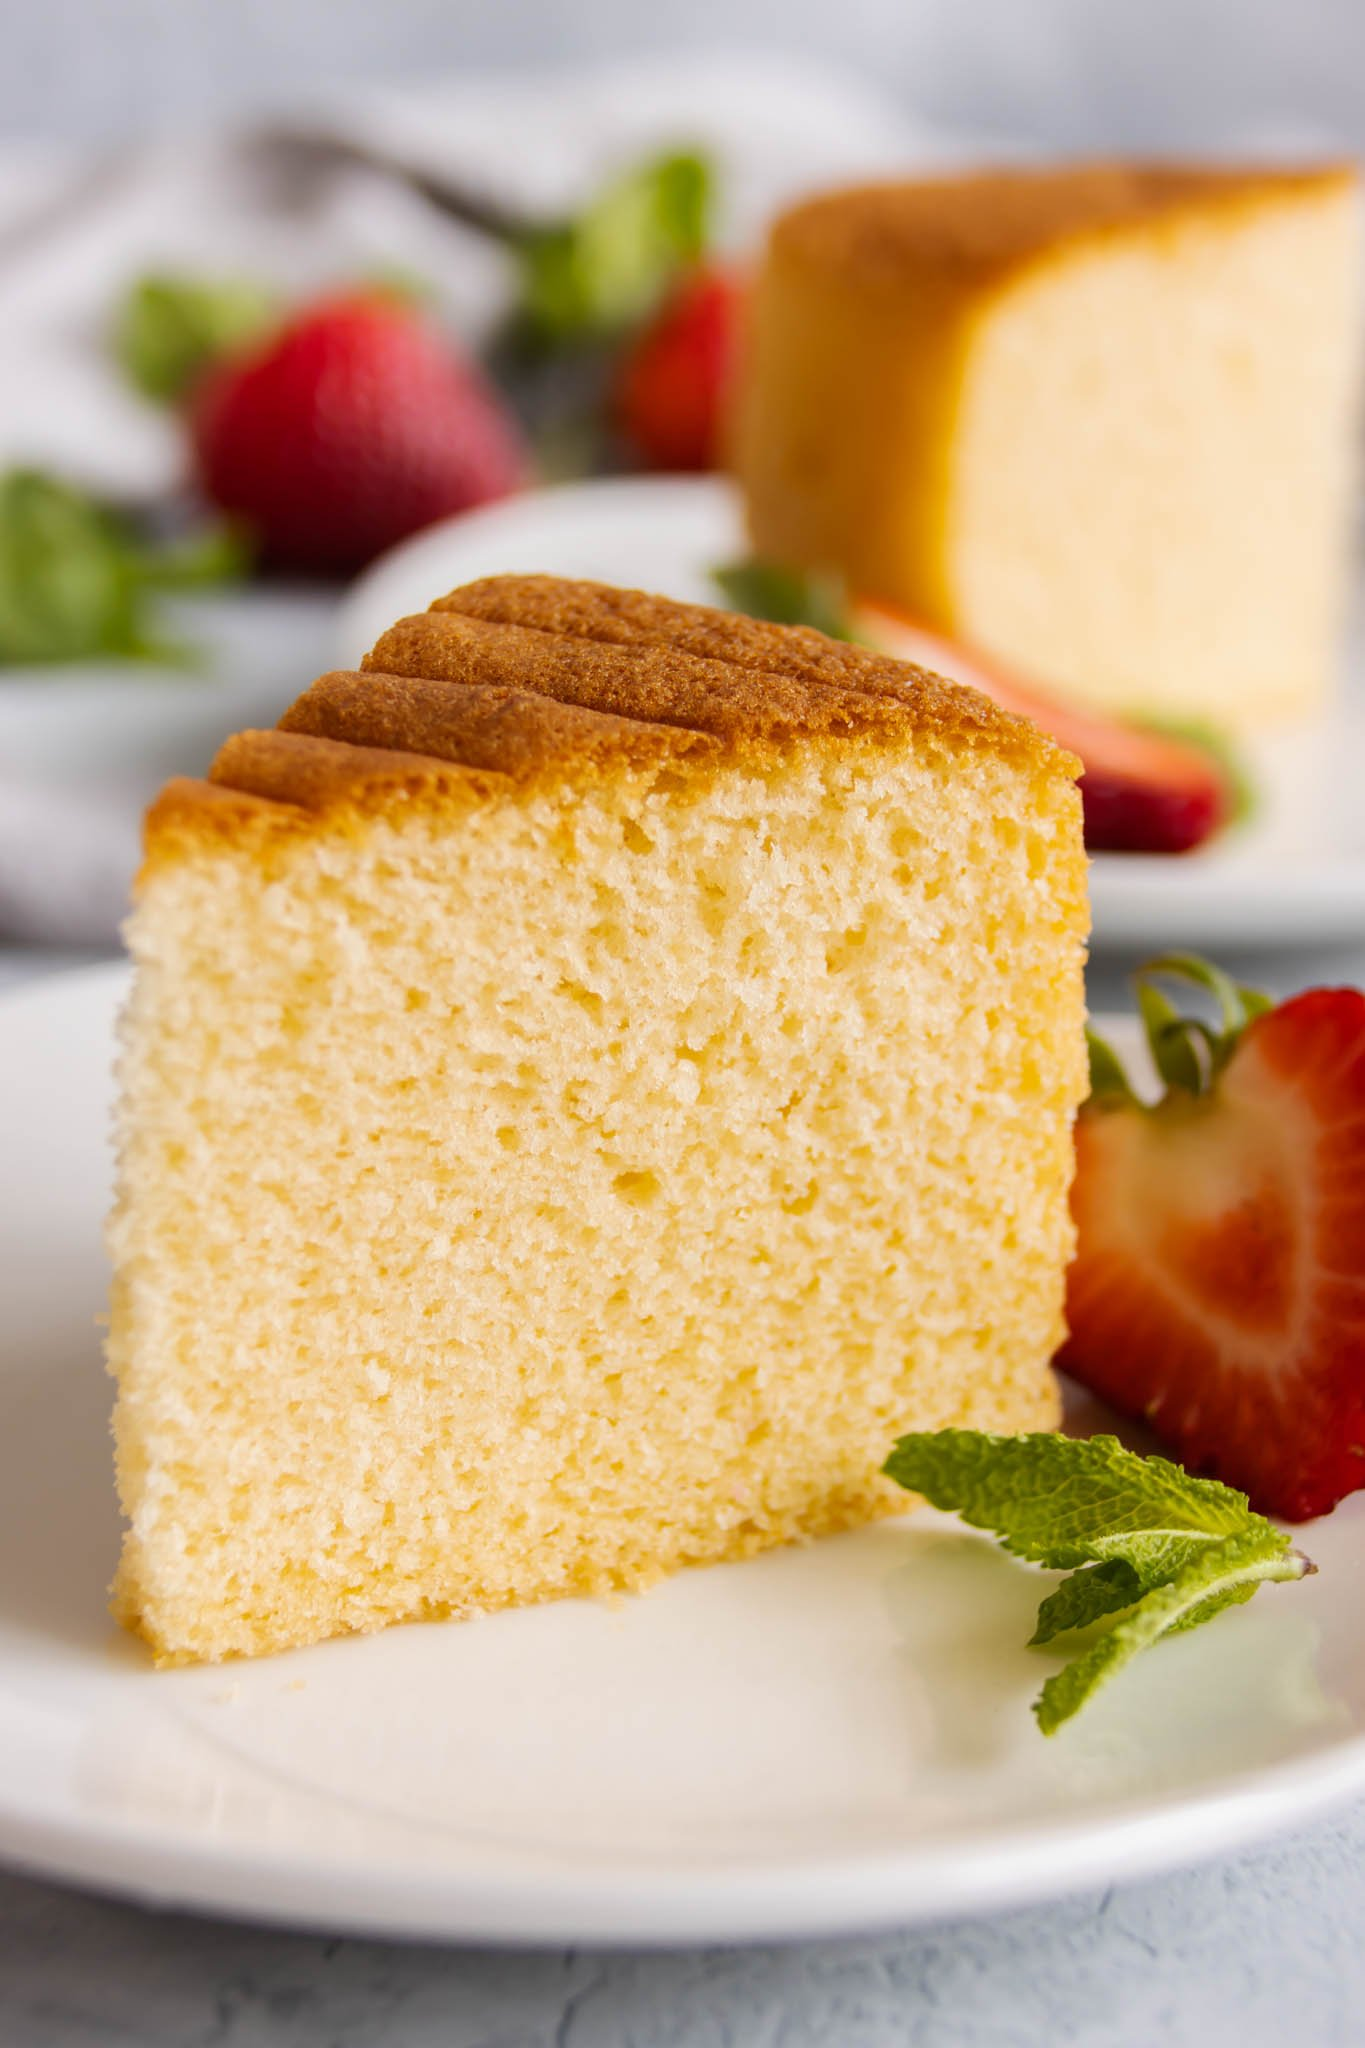 A slice of vanilla sponge cake, served with fresh-cut strawberry and garnished with mint leaves